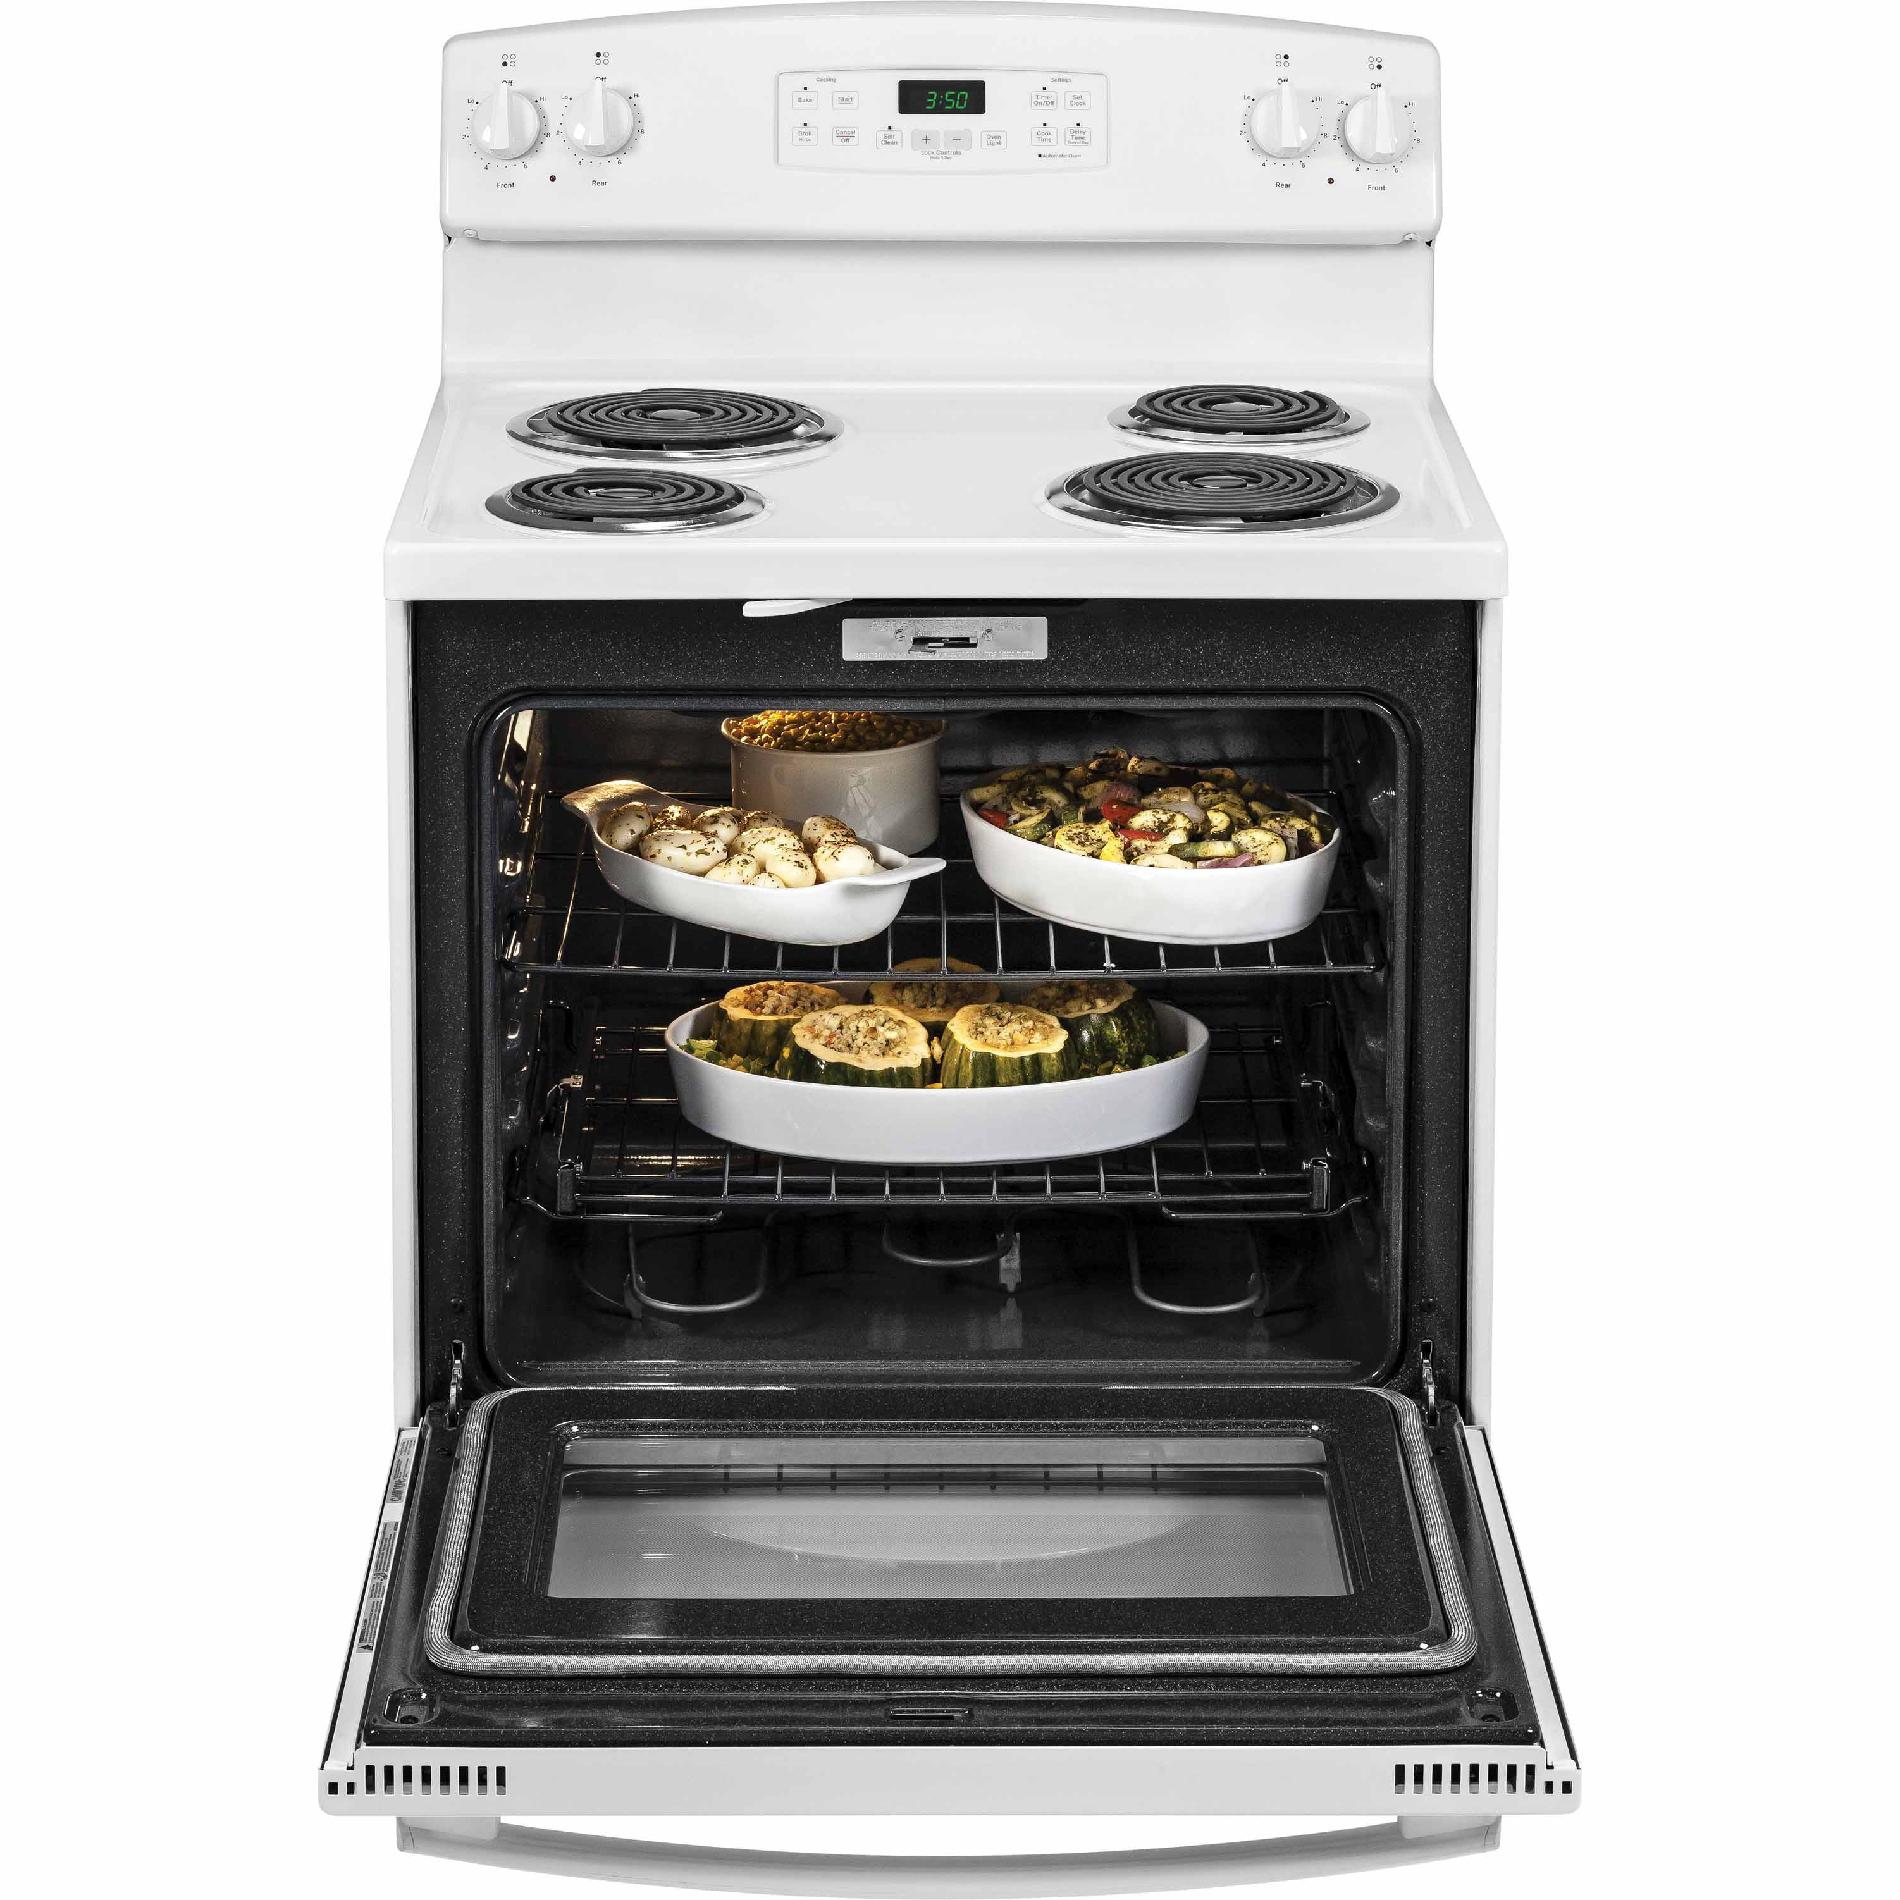 GE Appliances 5.3 cu. ft. Electric Range - White